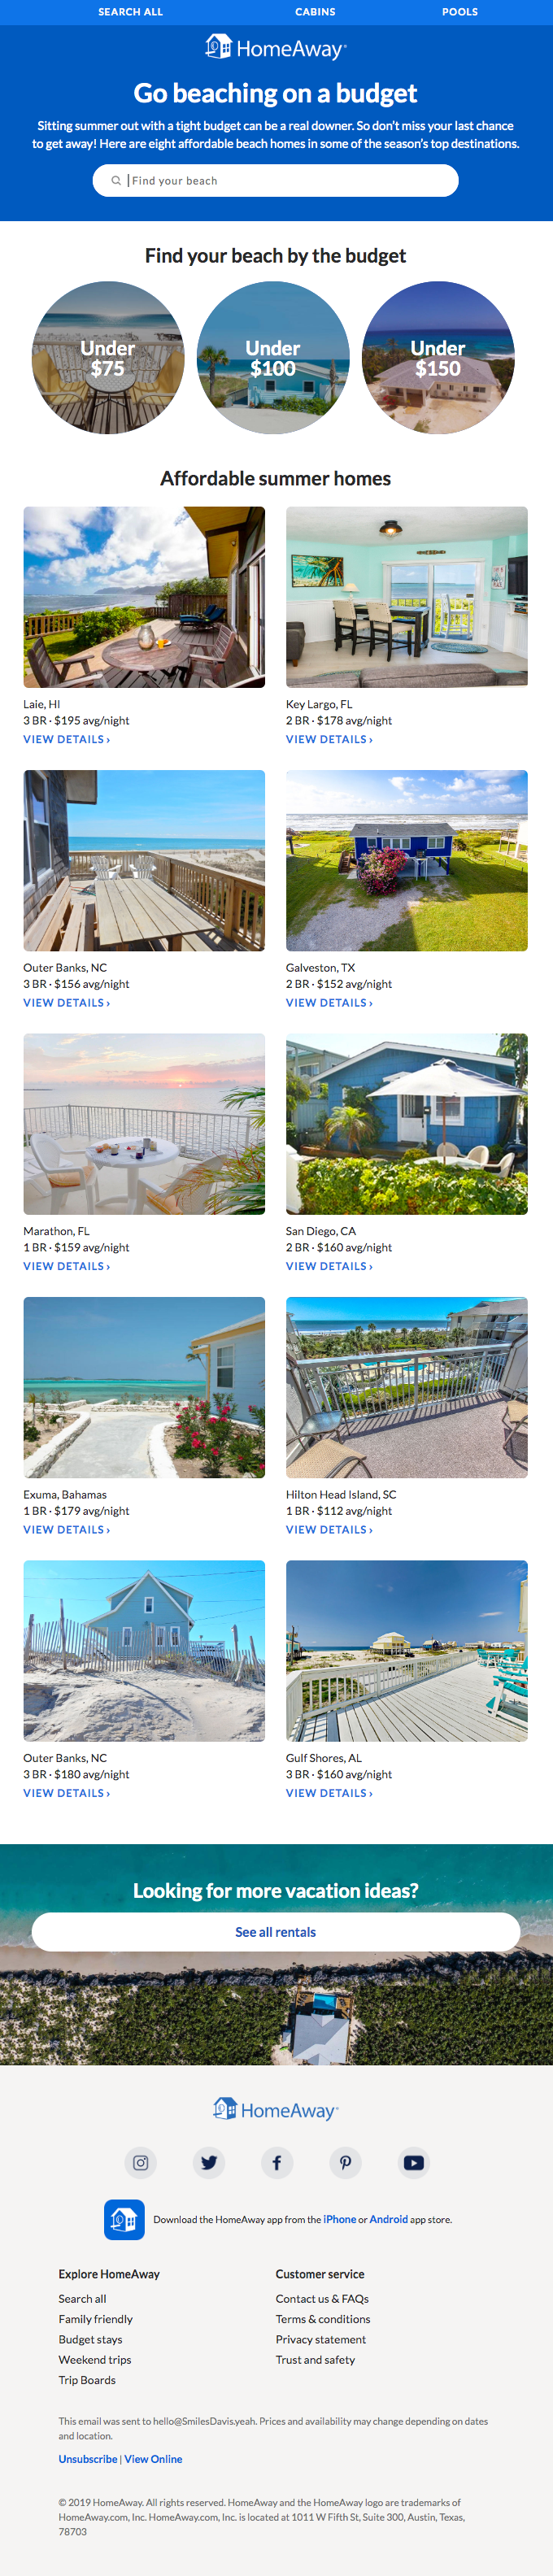 10 beautiful beach homes at budget prices